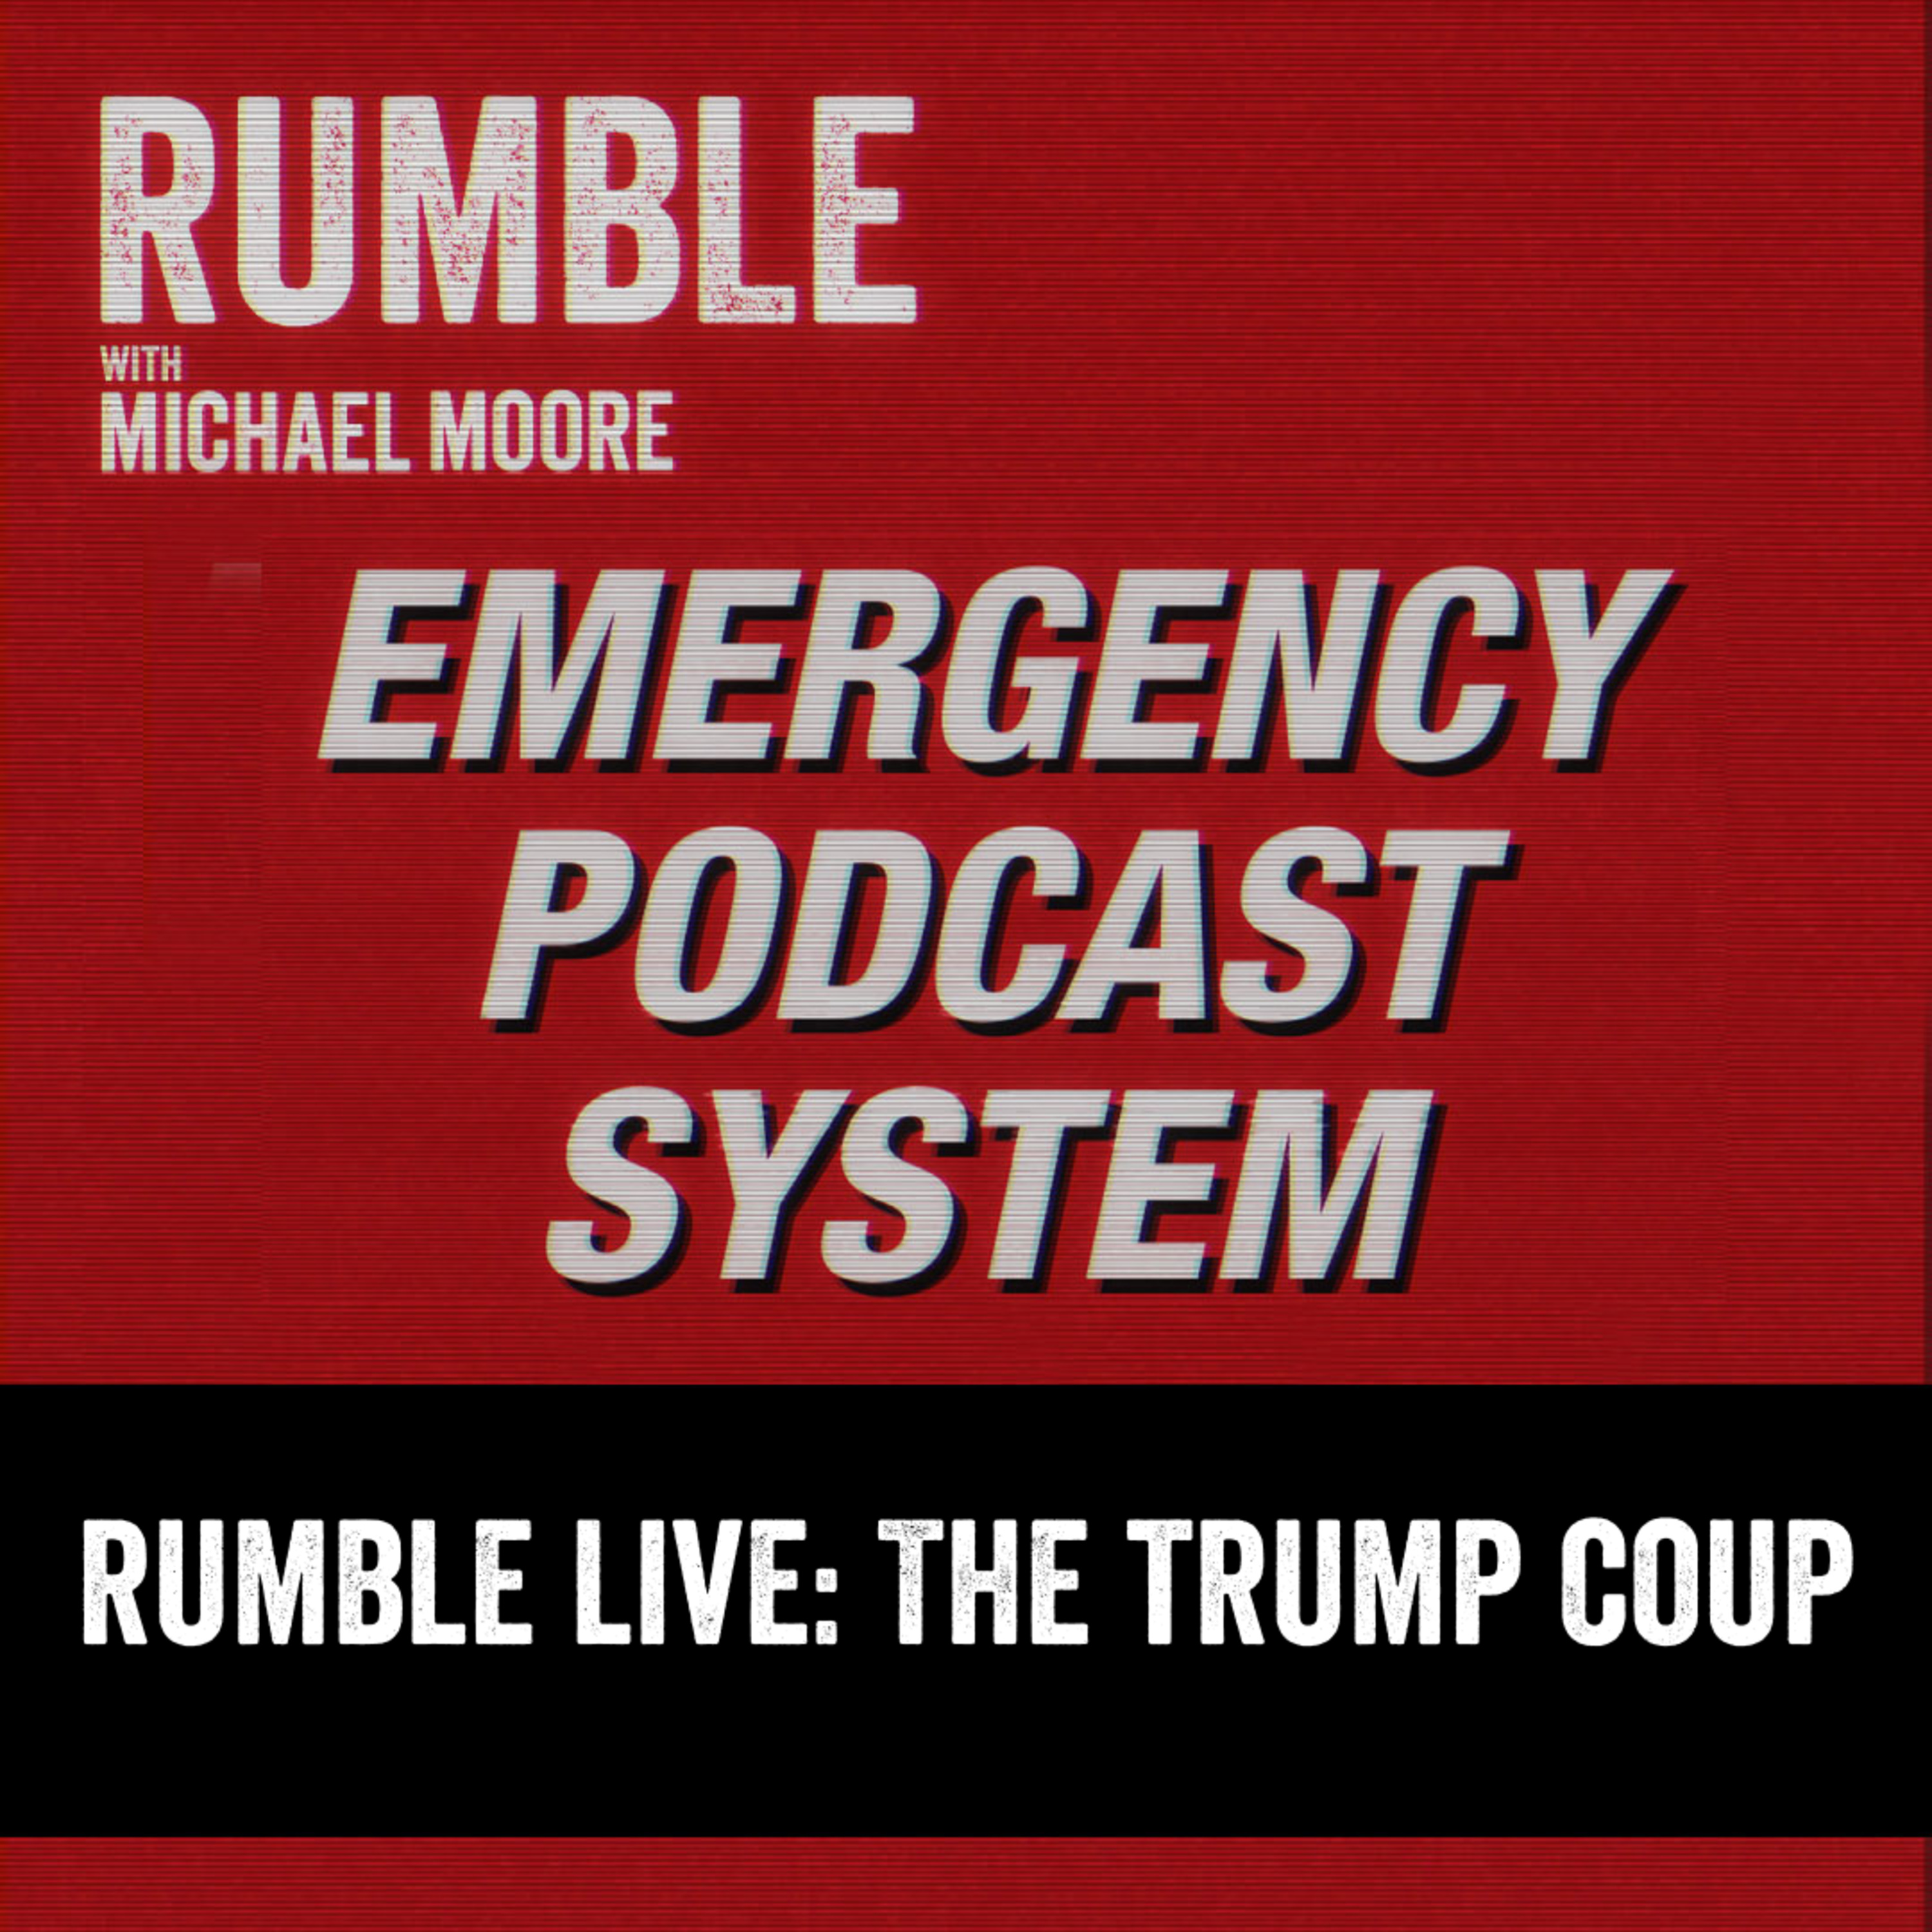 EP. 151: EMERGENCY PODCAST SYSTEM - The Trump Coup